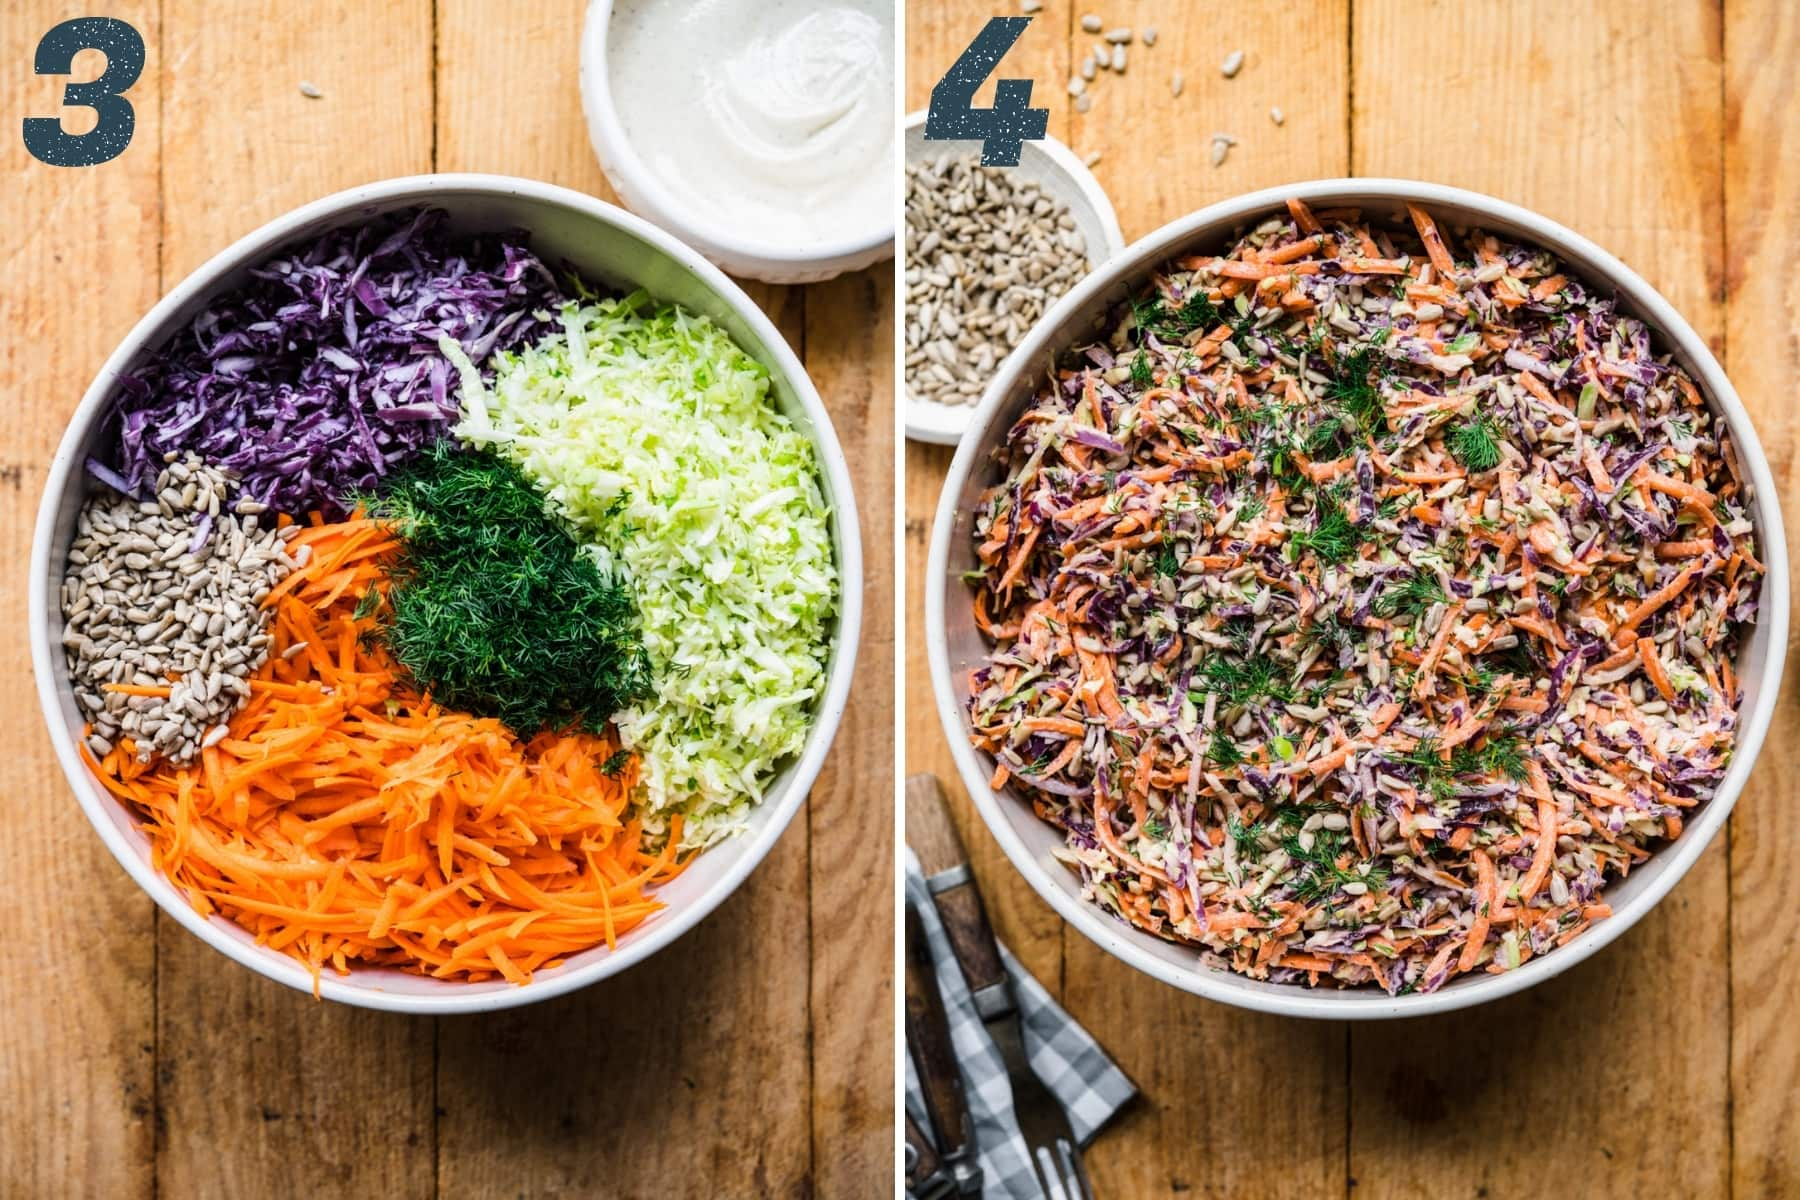 before and after mixing together ingredients for vegan coleslaw in a large mixing bowl.